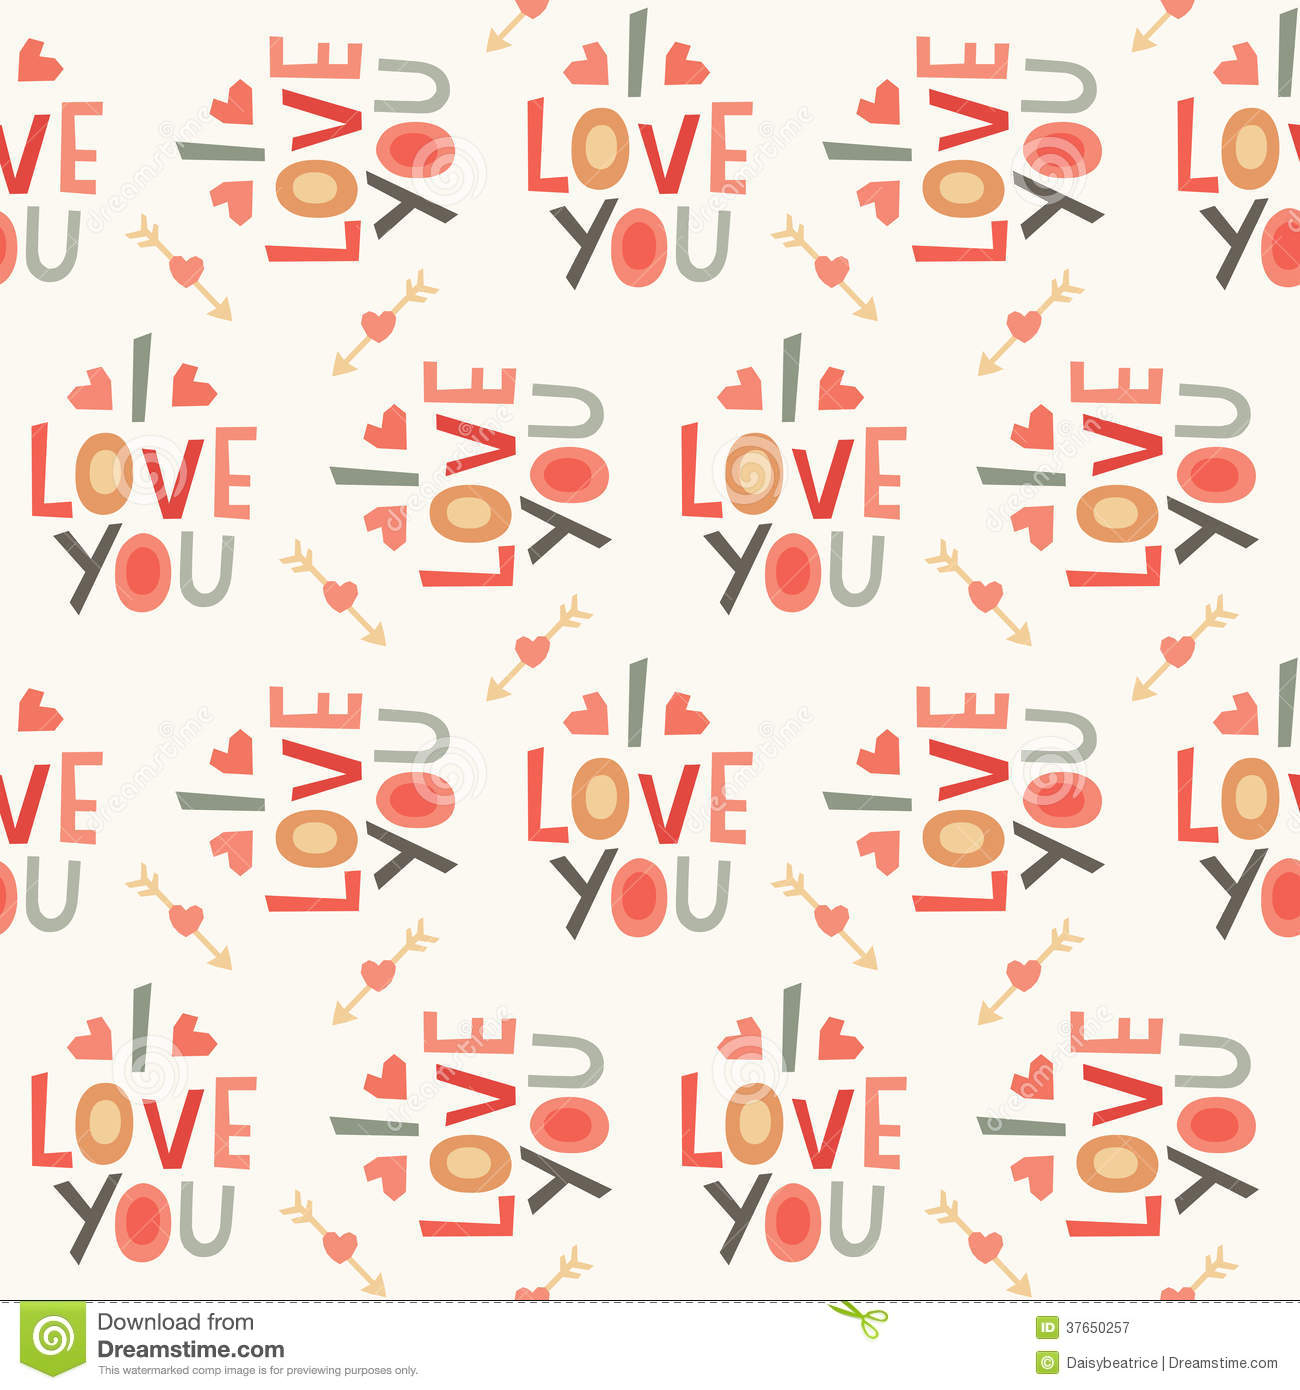 Seamless hipster love pattern in cream and red